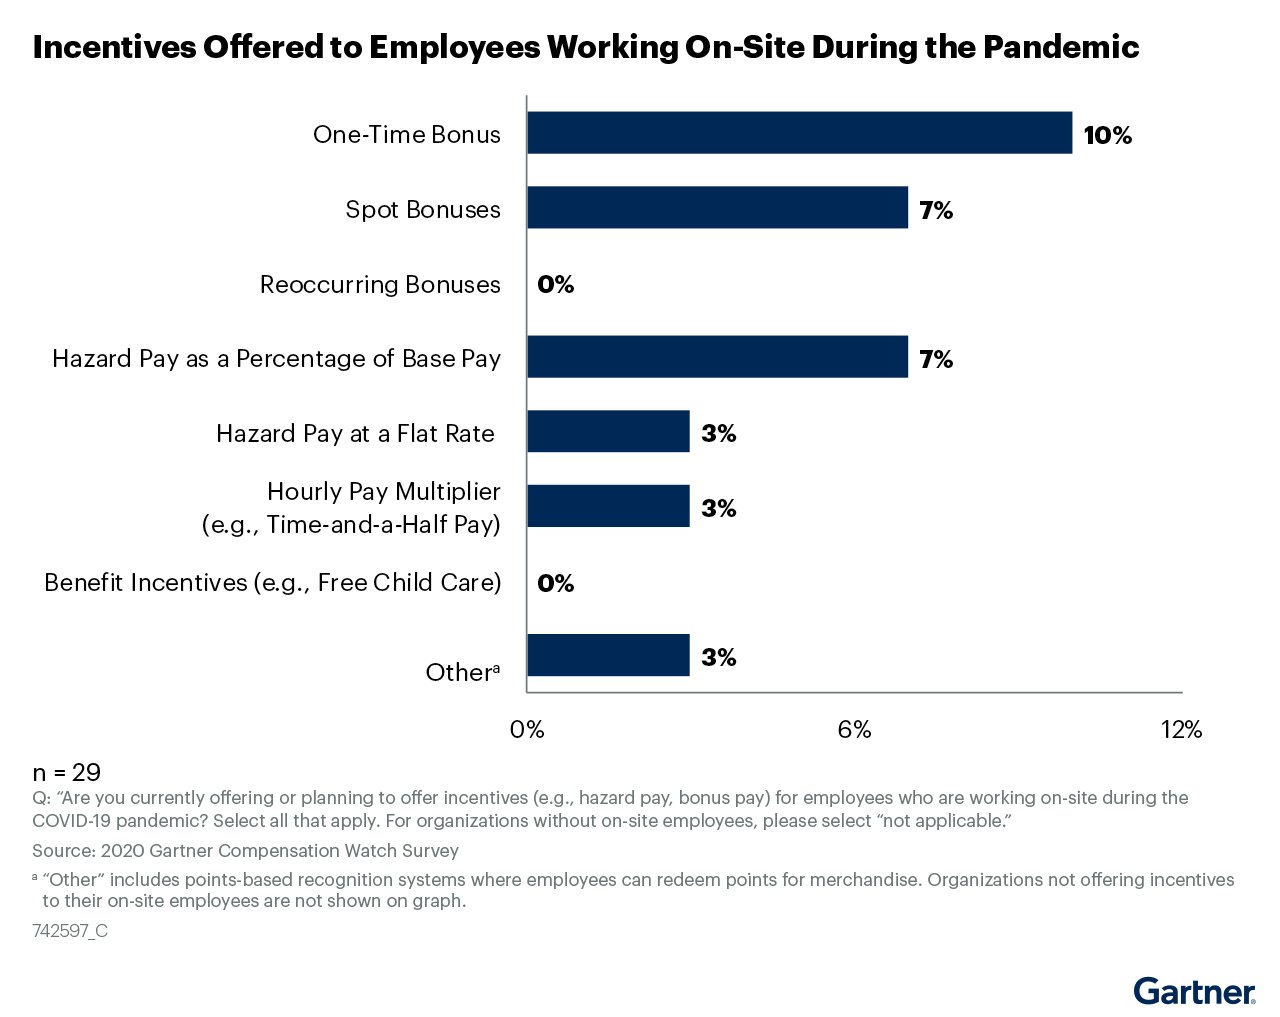 Figure 19: Incentives Offered to Employees Working On-Site During the Pandemic